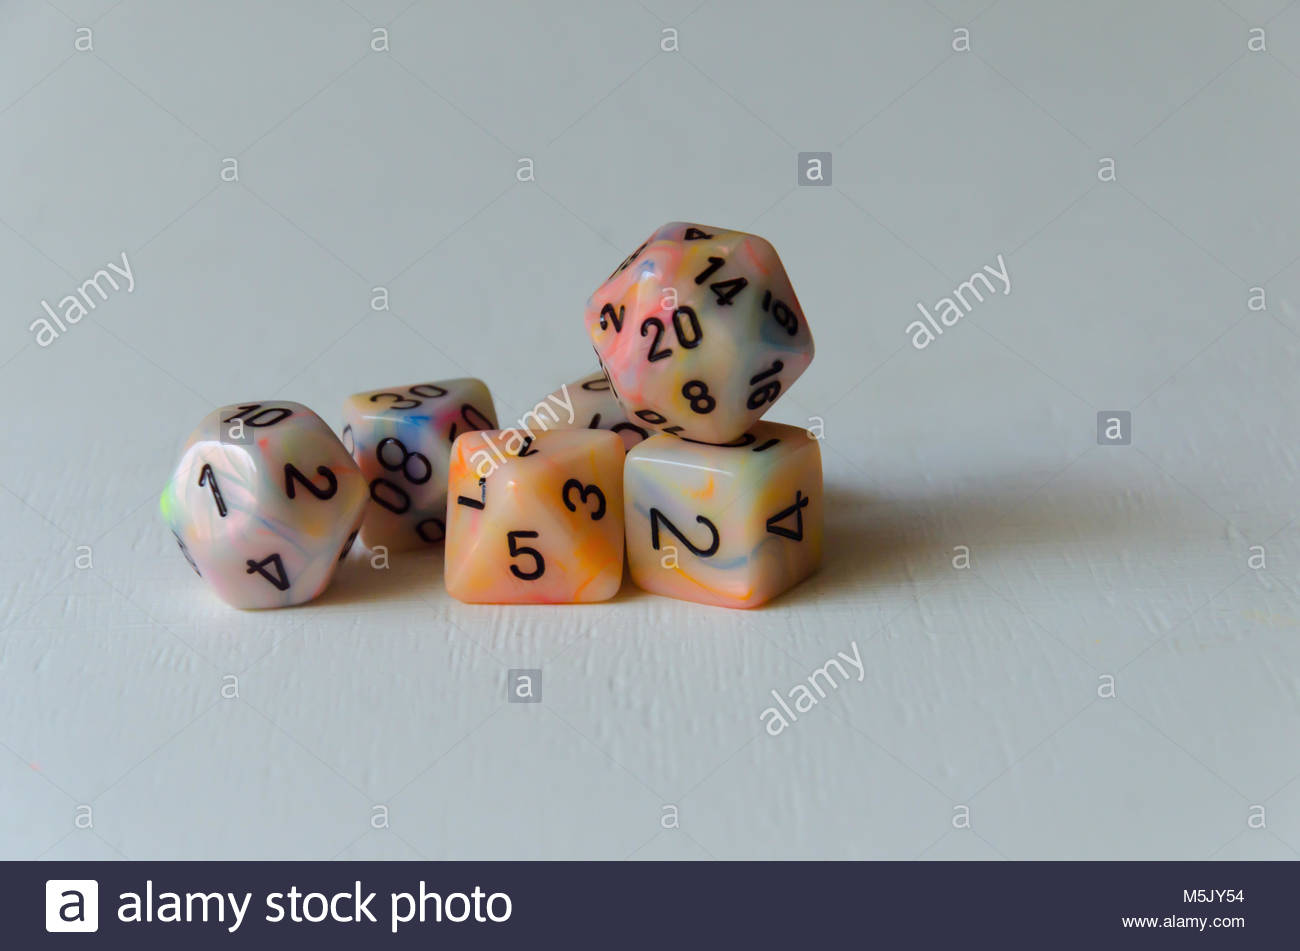 Multi sided numbered dice on white background - Stock Image